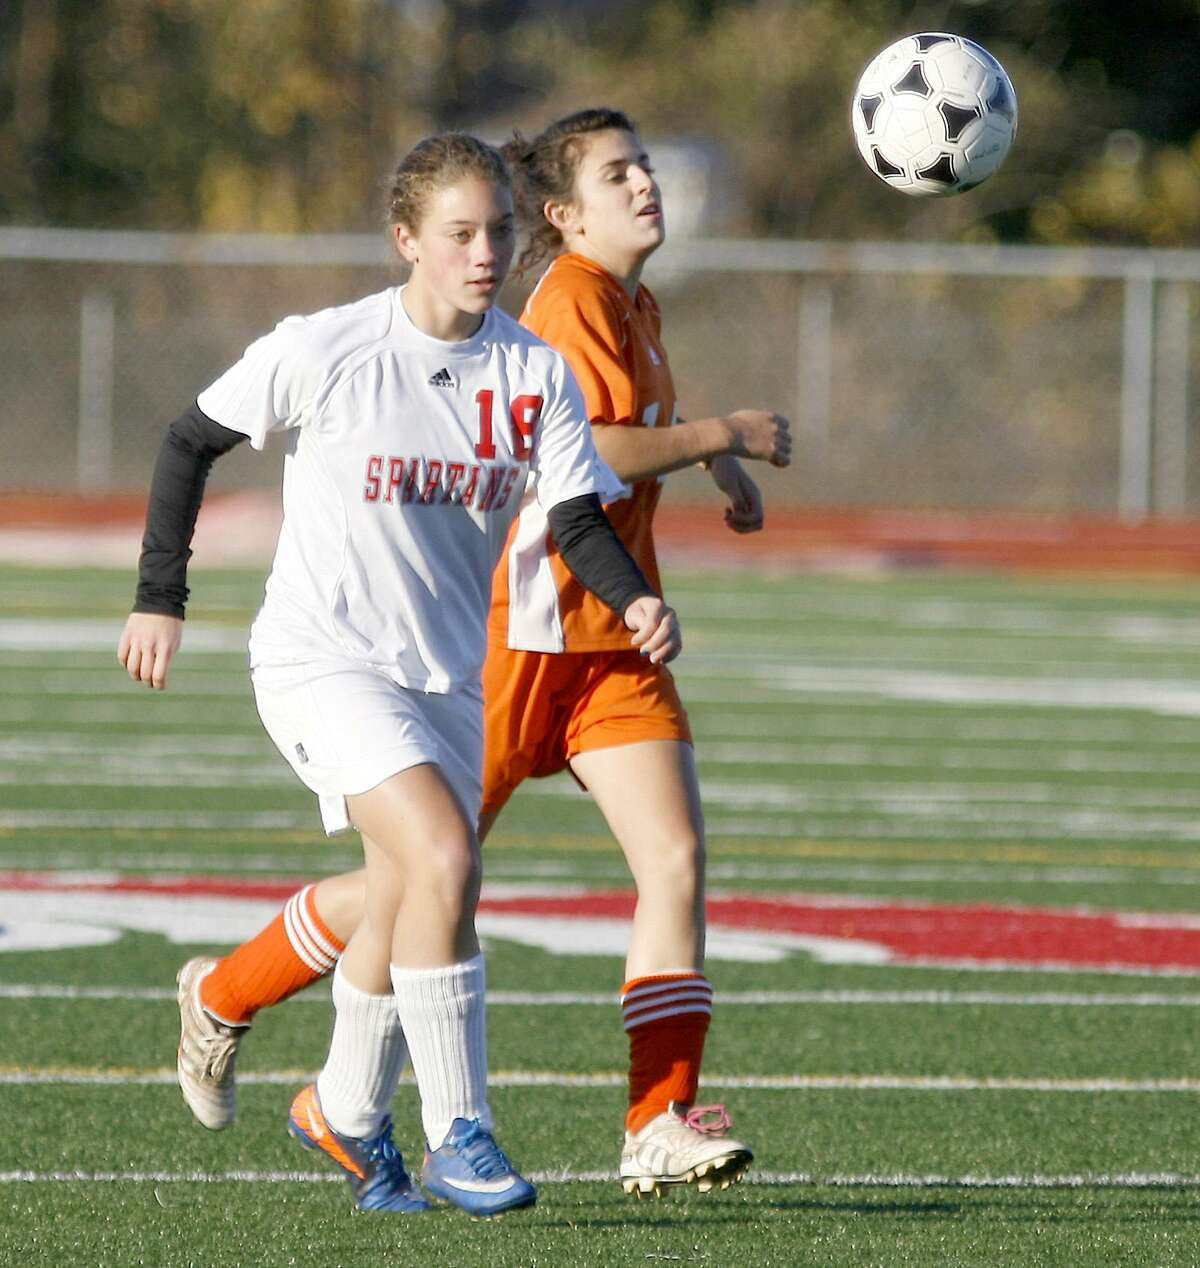 Dispatch Staff Photo by JOHN HAEGER twitter.com/oneidaphoto New Hartford's Alysa Keady (18) and Oneida's Nicole DelPino (14) chase down the loose ball in the first half of the Sec III quarterfinal match in New Hartford on Tuesday, Oct. 25, 2011.